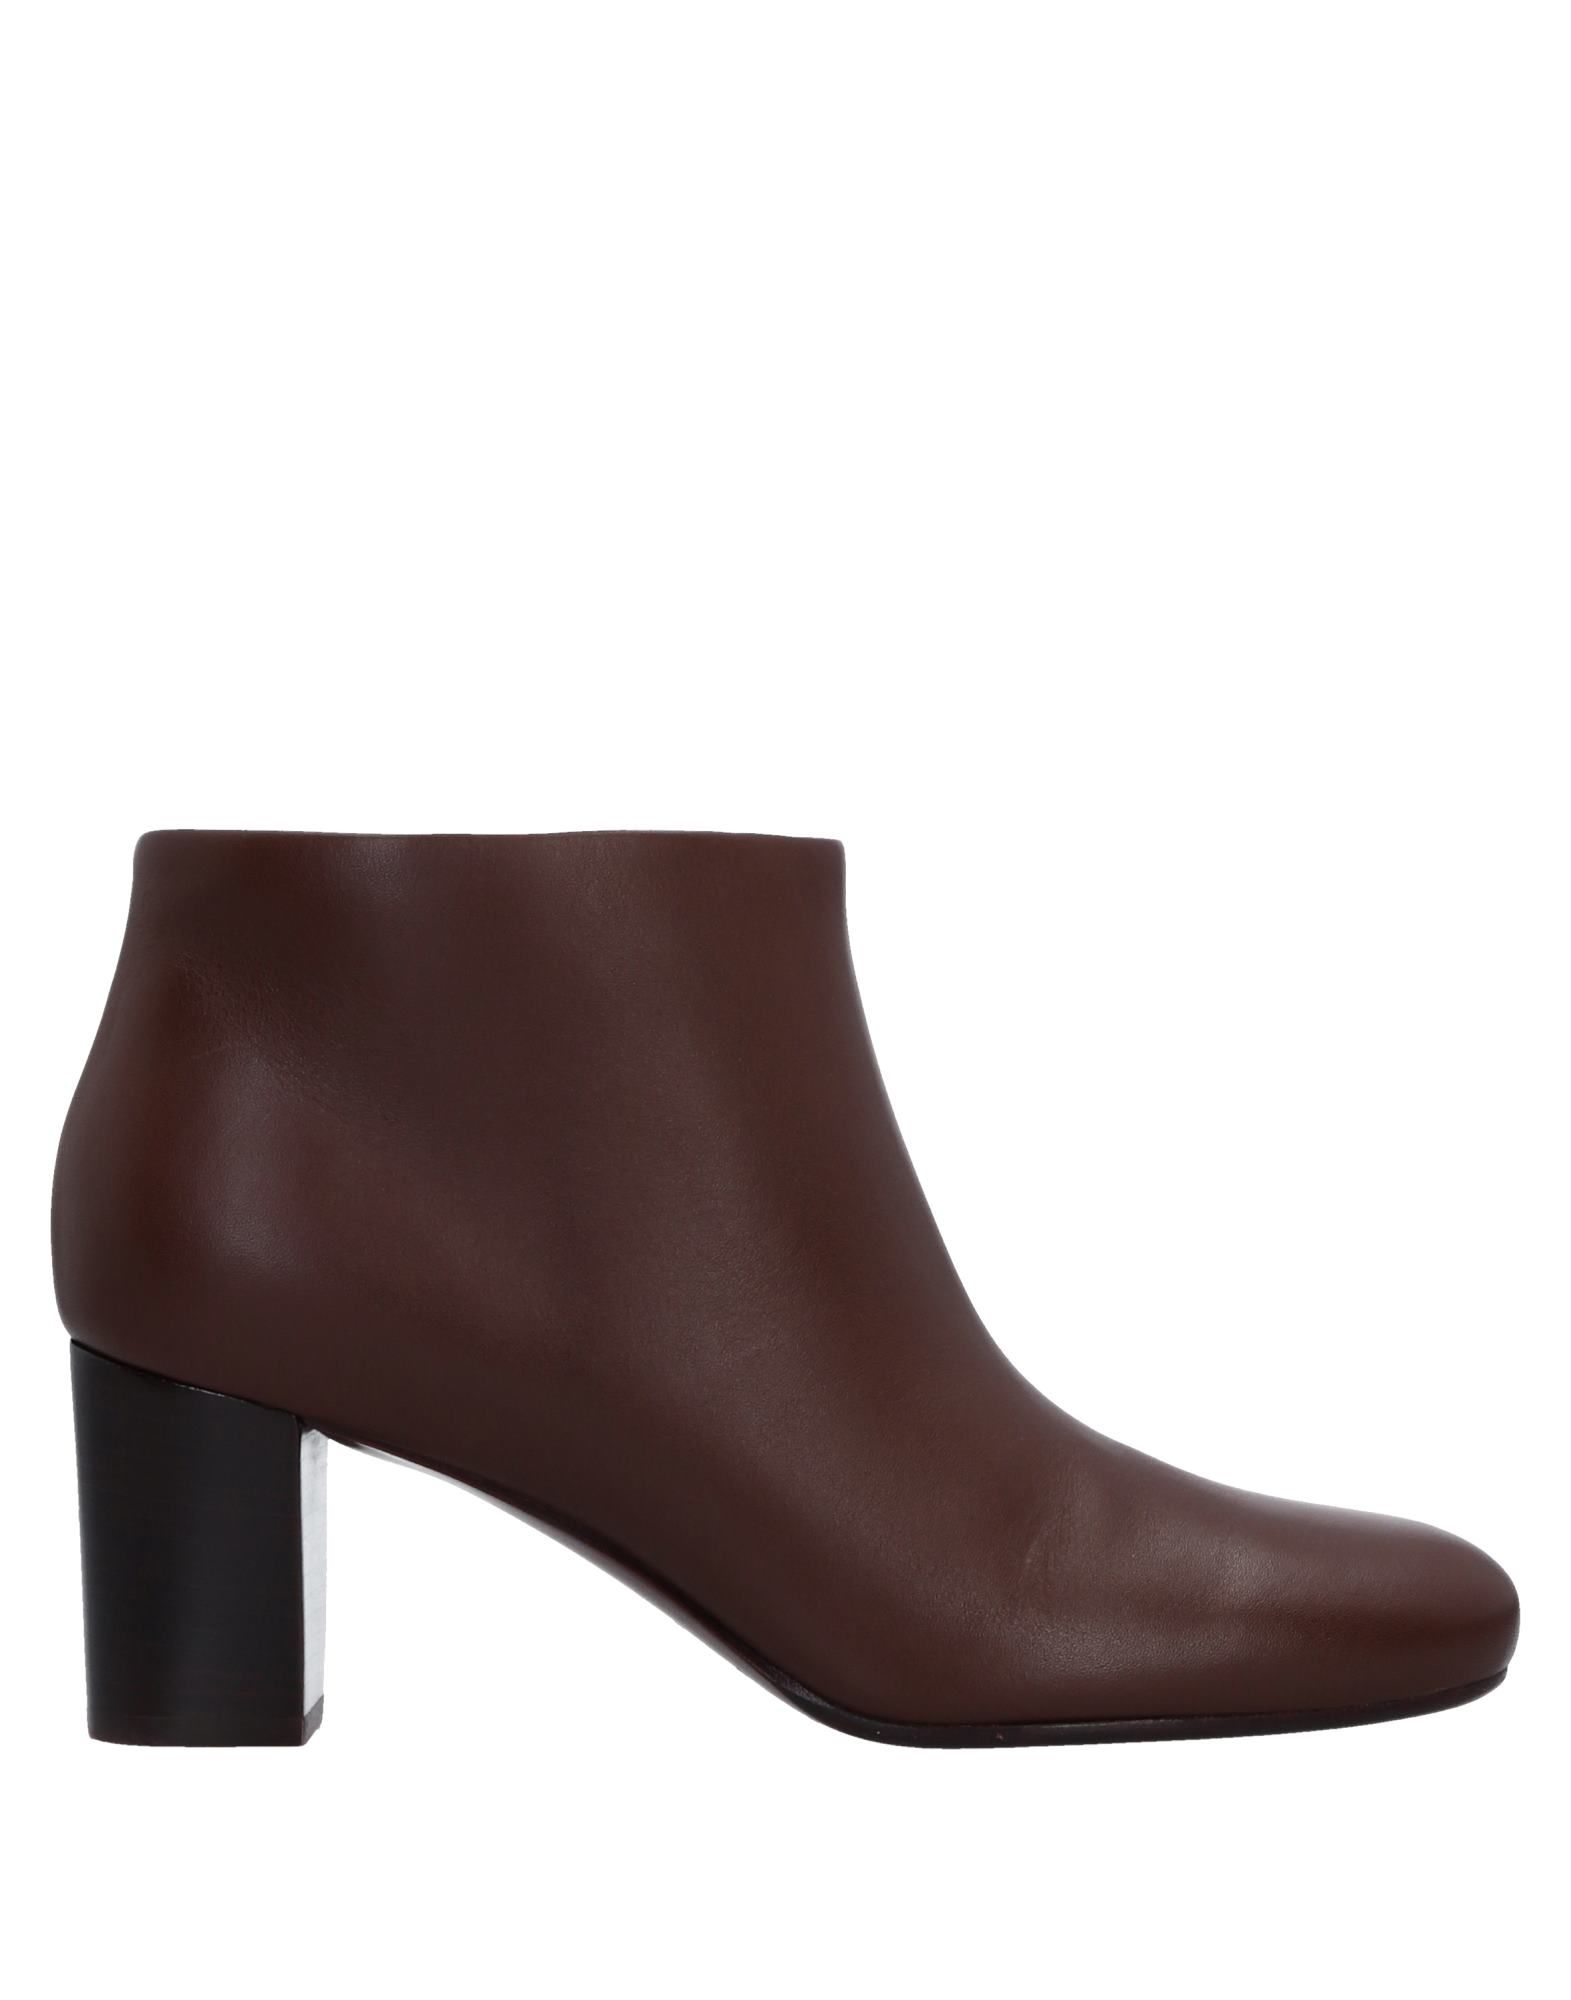 AVRIL GAU Ankle Boots in Cocoa